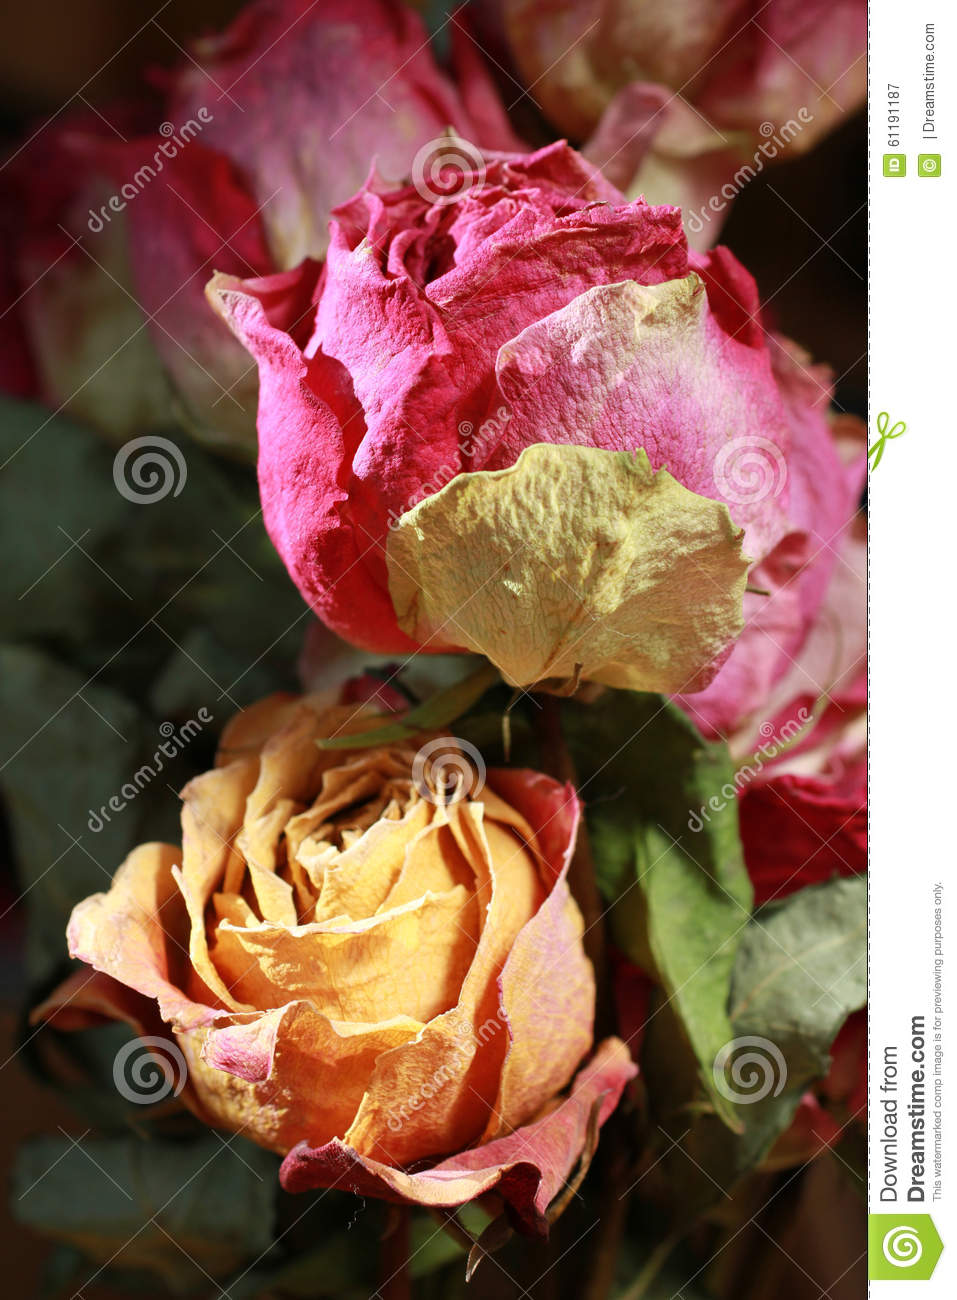 dry roses peach and pink colour stock image image of peach nature